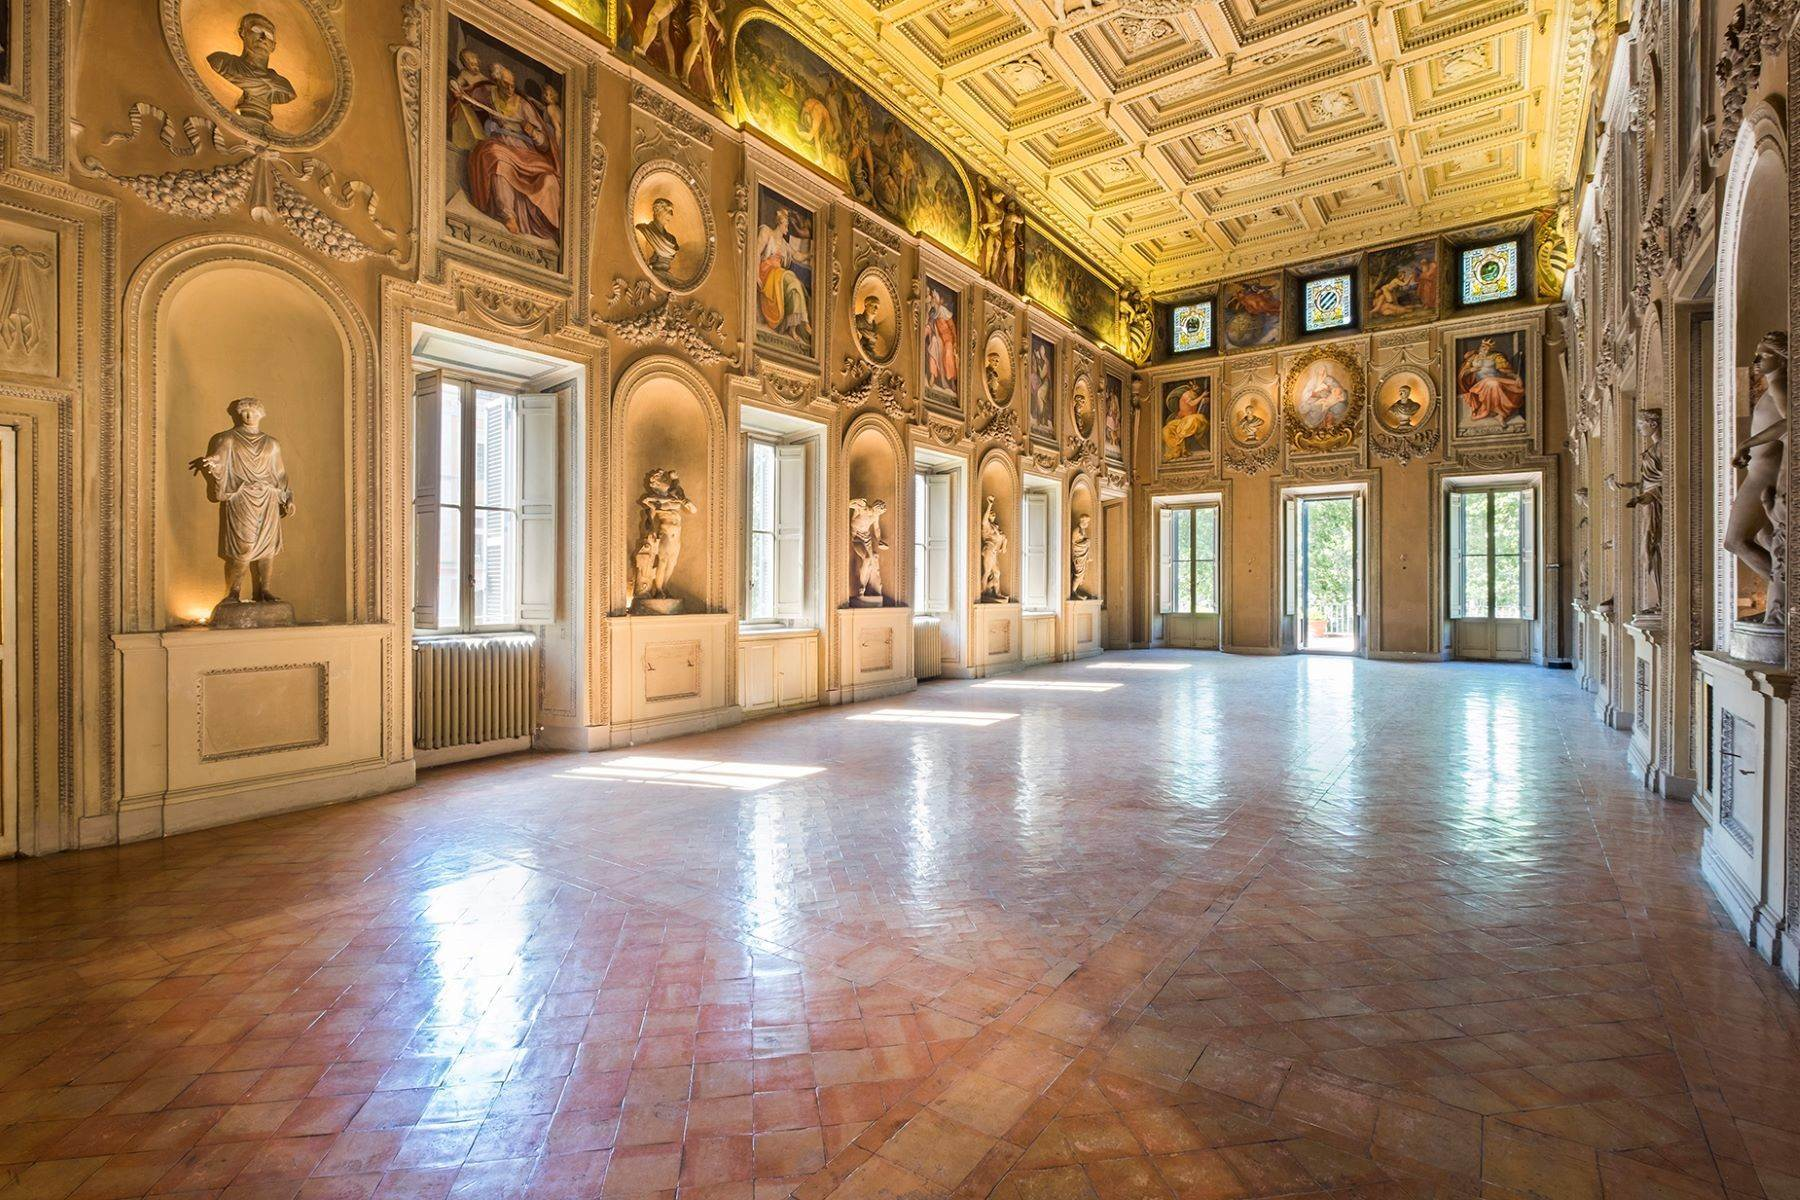 Property for Sale at Noble floor apartment in Palazzo Sacchetti, a pearl of the late Renaissance Rome, Rome Italy